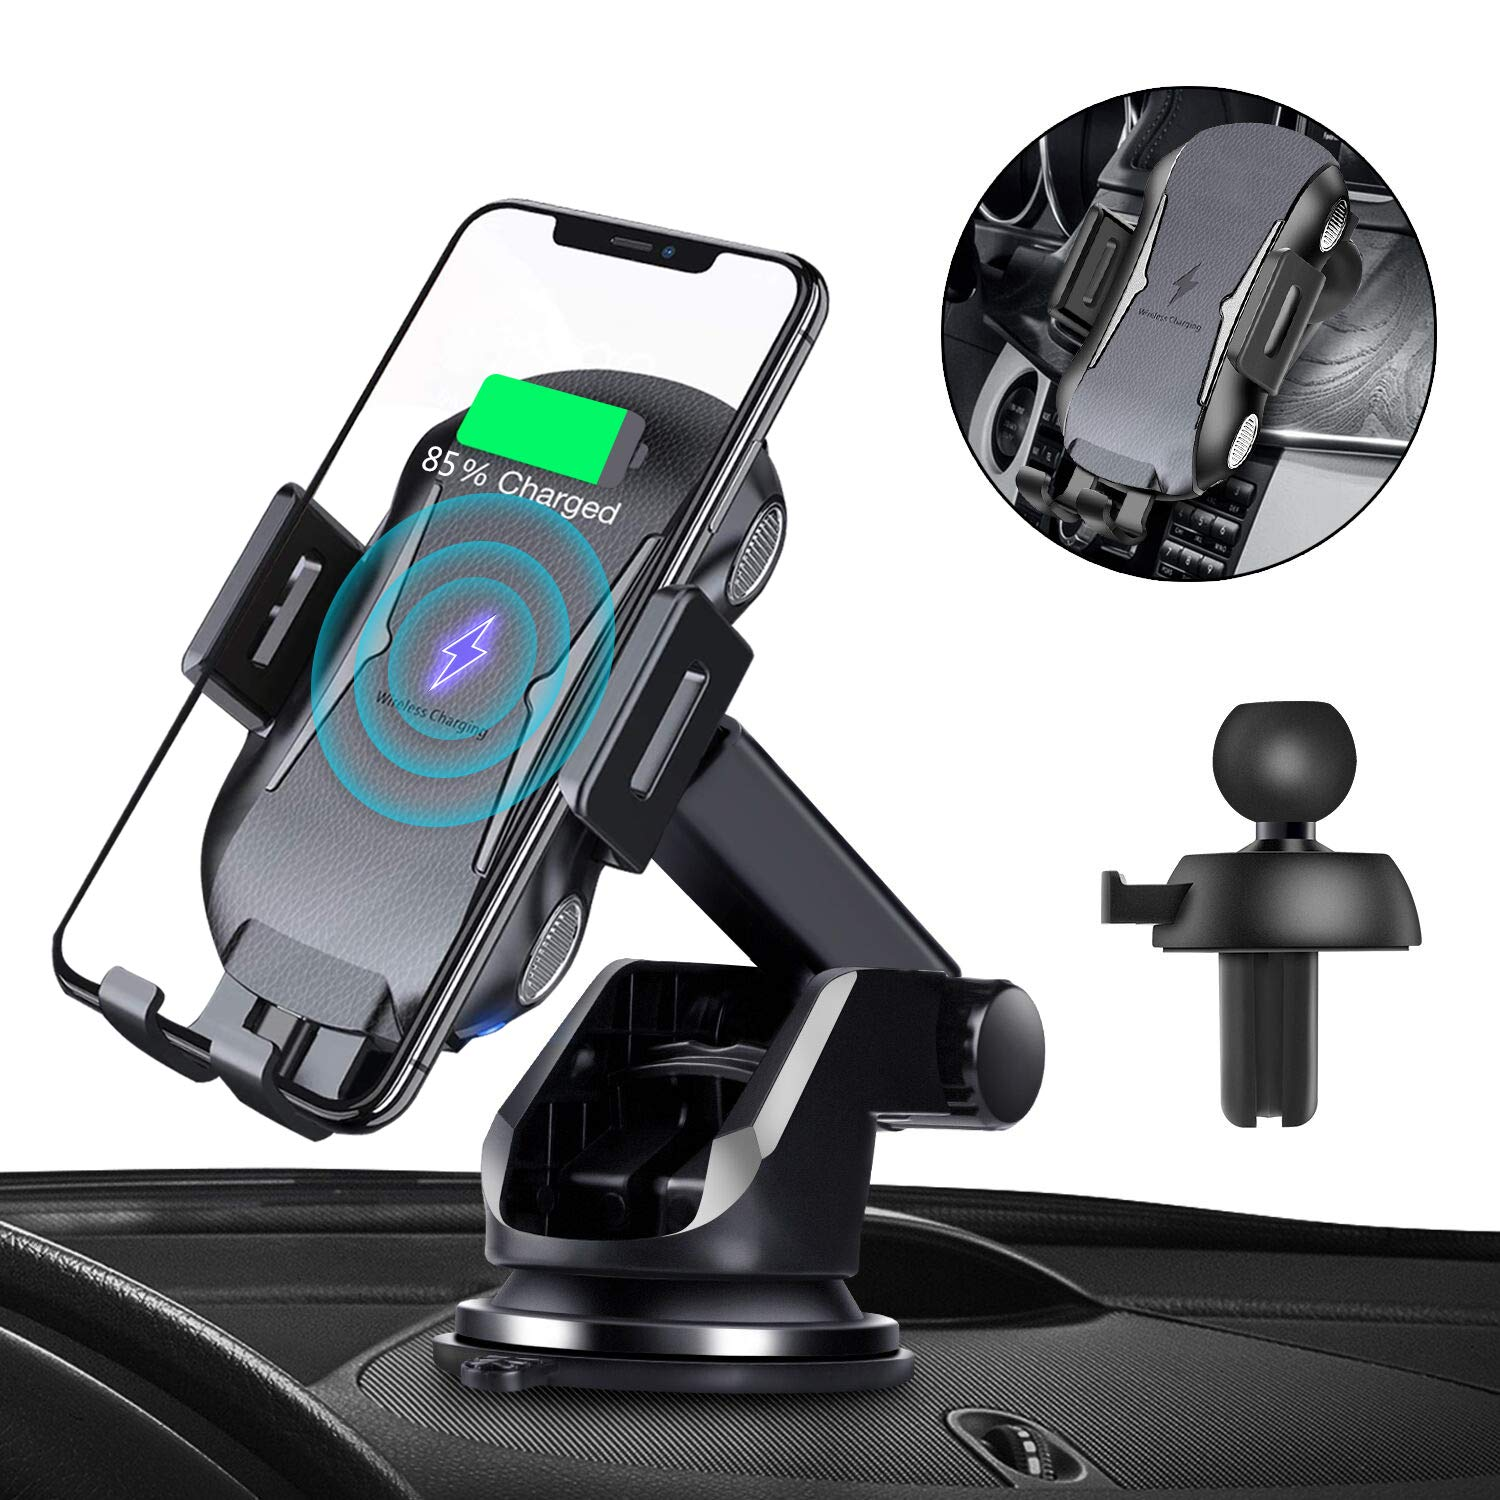 Automatic Clamping Qi Wireless Car Charger, SANCEON 10W/7.5W Fast Charger Car Mount Phone Holder for Air Vent Dashboard Compatible with iPhone Xs/Xs Max/XR/X/8/8Plus, Samsung Galaxy S10/S10+/S9/S9+/S8 by SANCEON (Image #1)